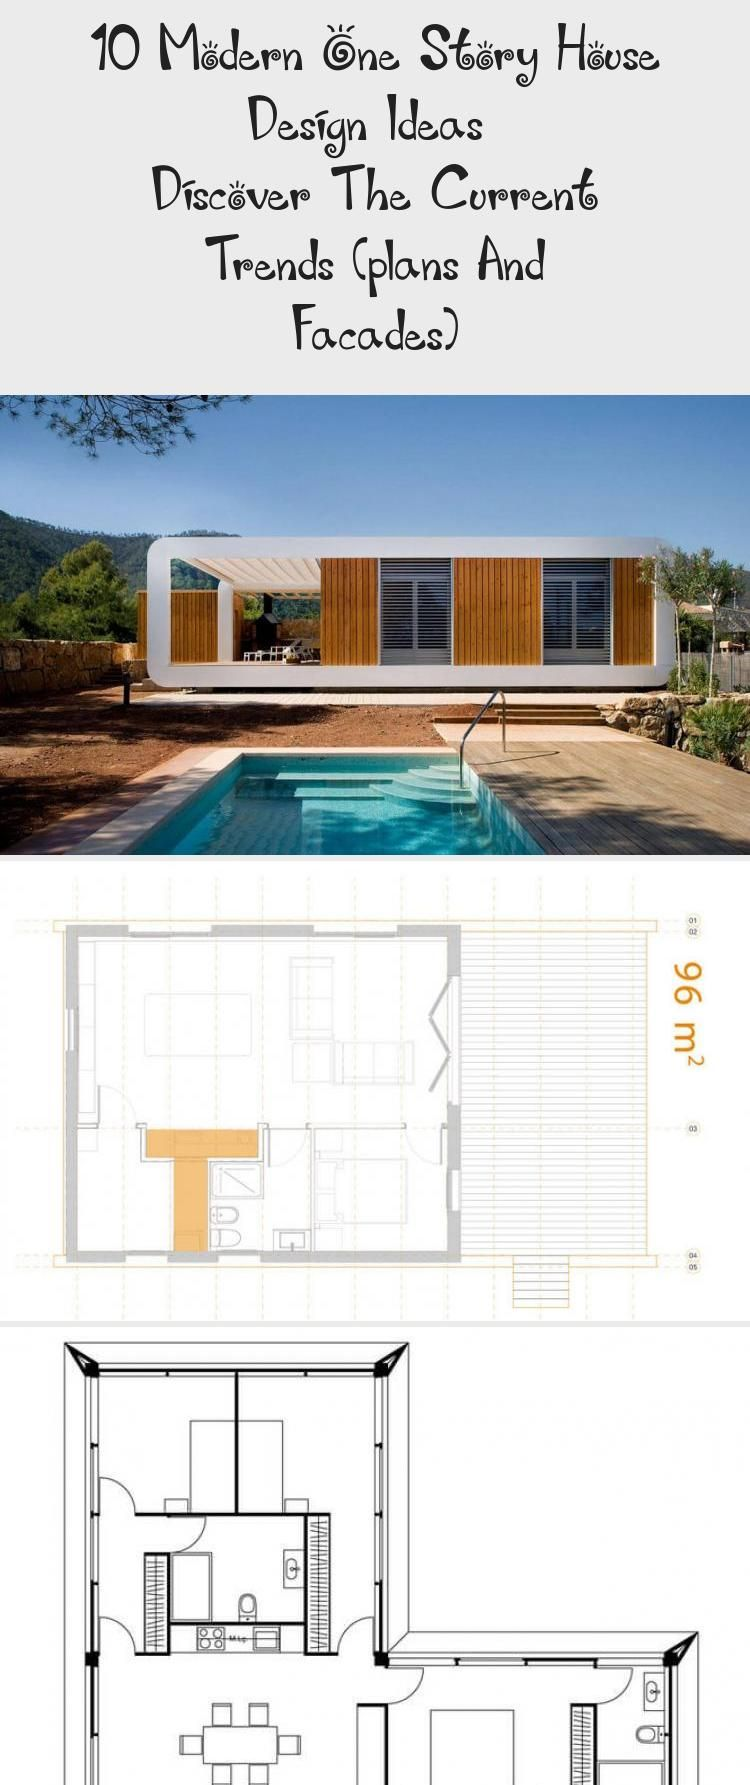 10 Modern One Story House Design Ideas – Discover The Current Trends (plans  And Facades in 2020 | Modern house facades, Facade house, Modern house plans